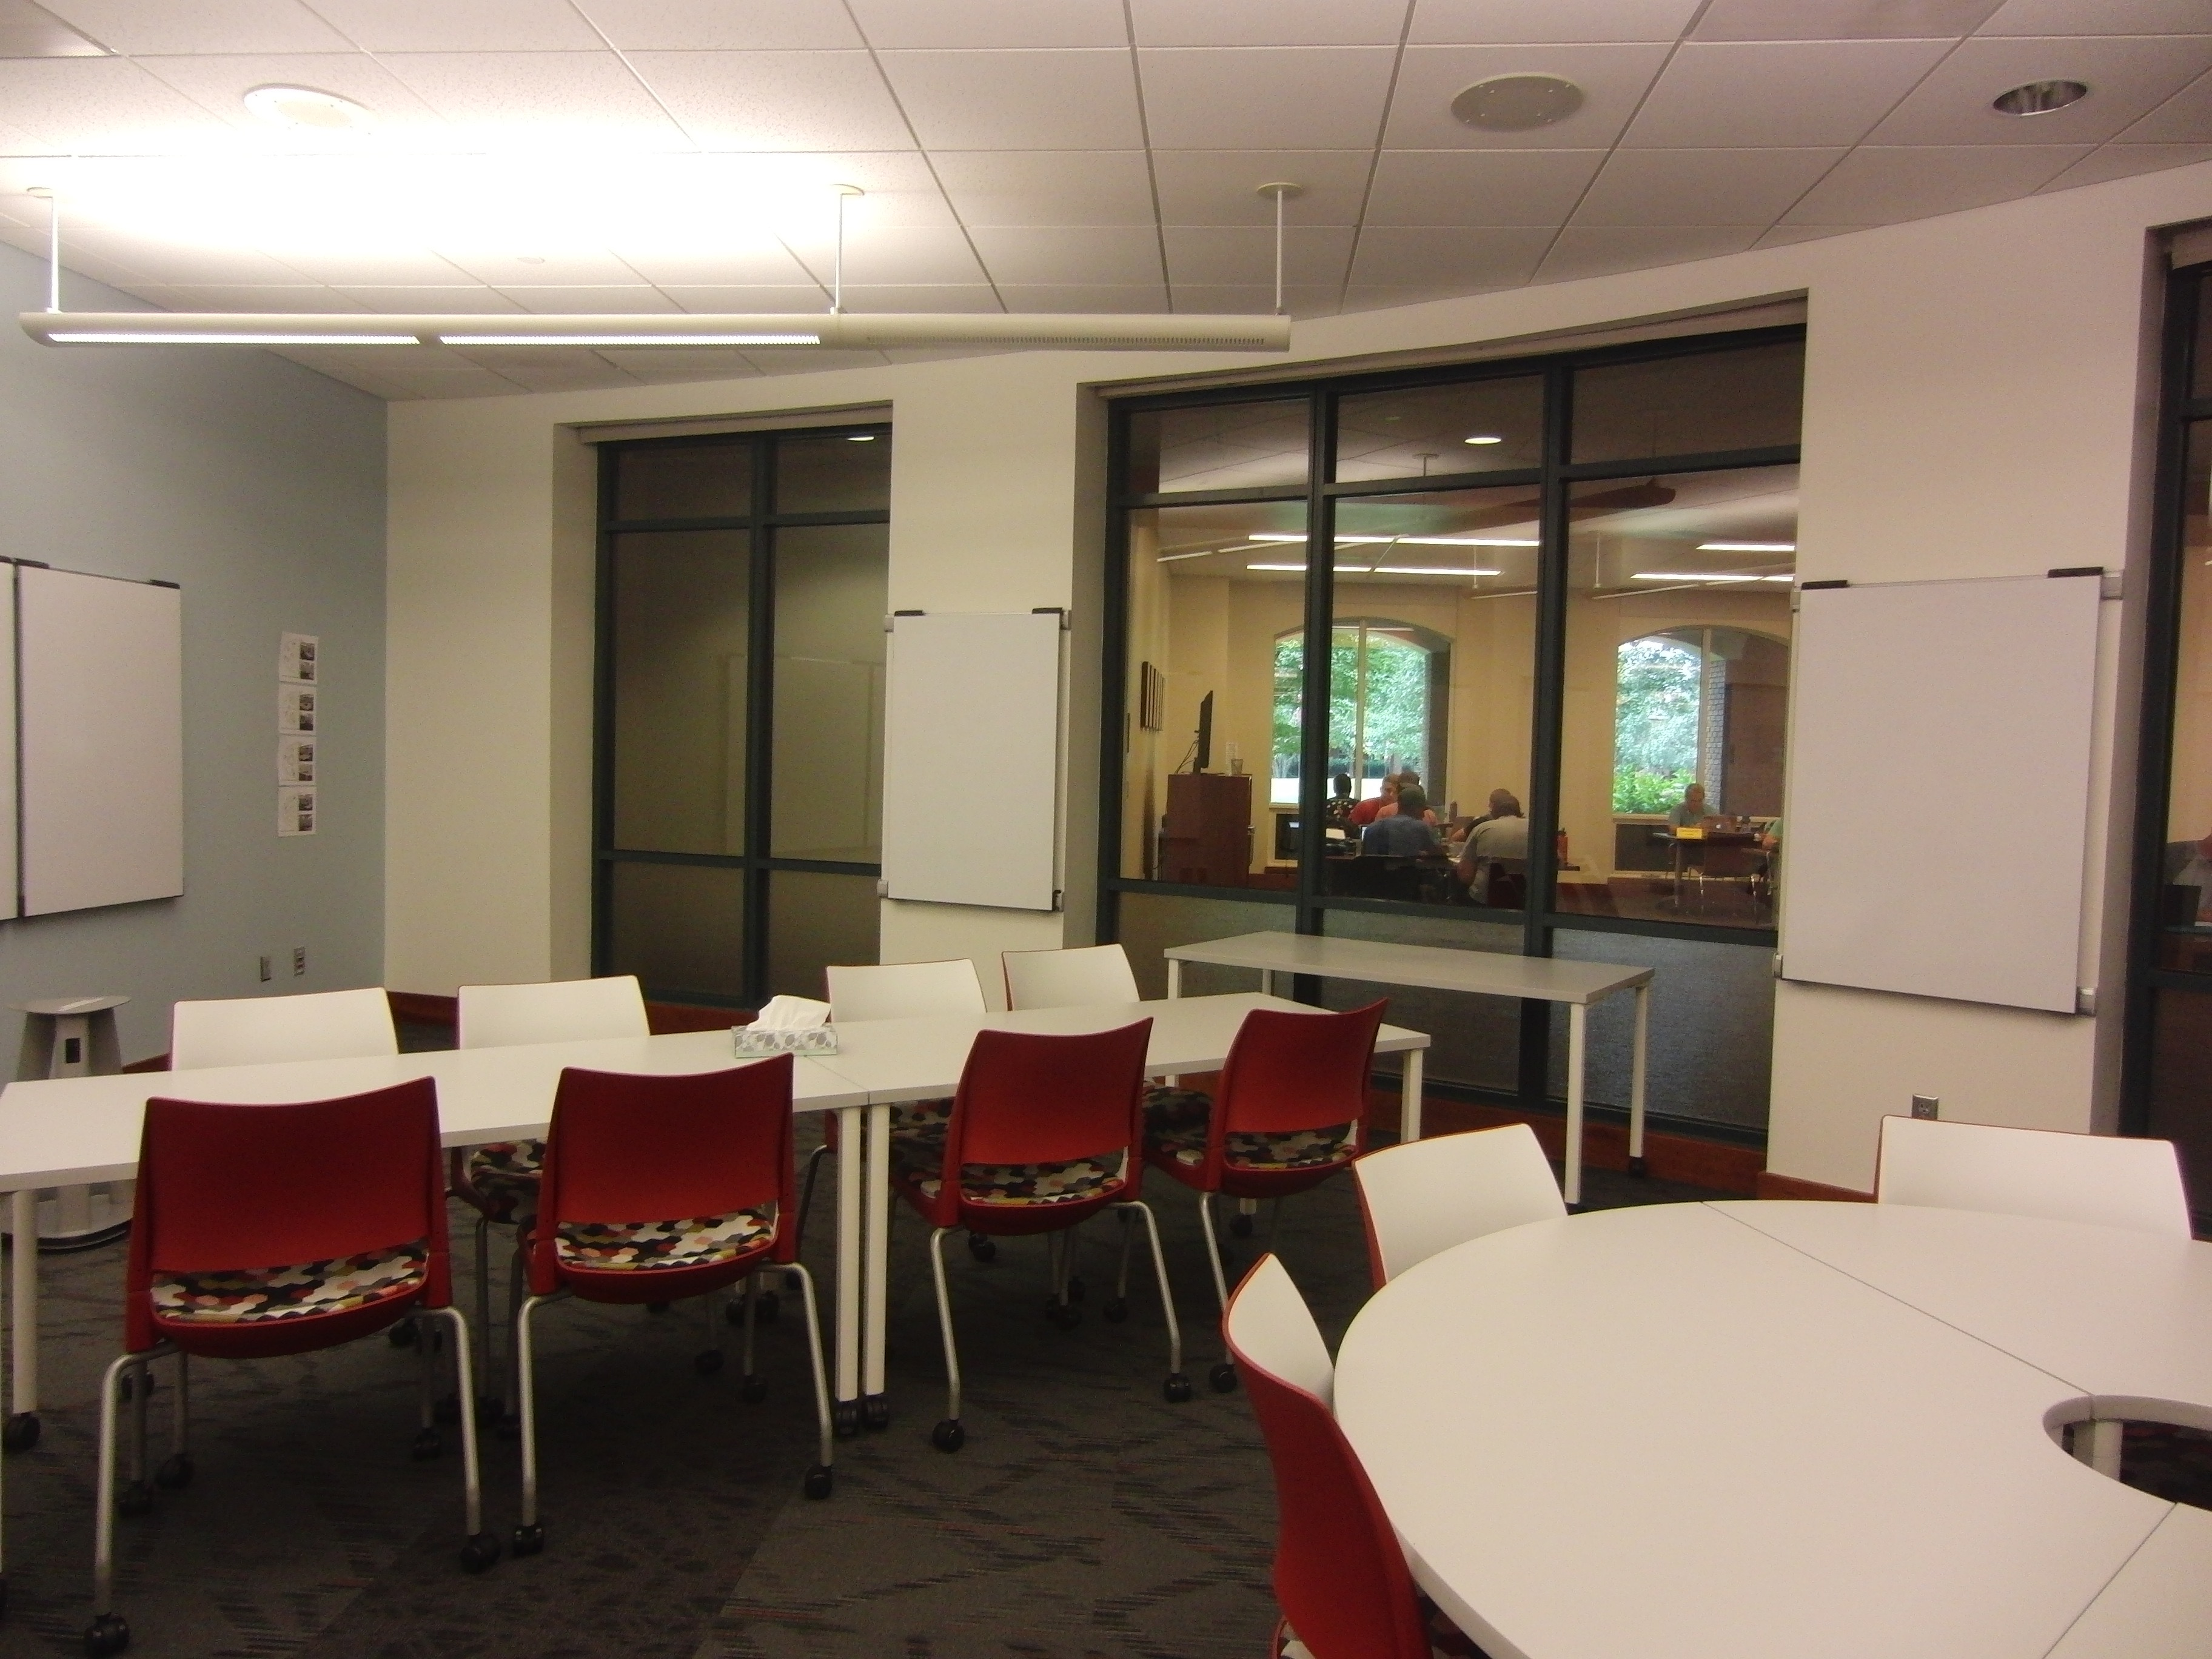 A photo of the room from the side.